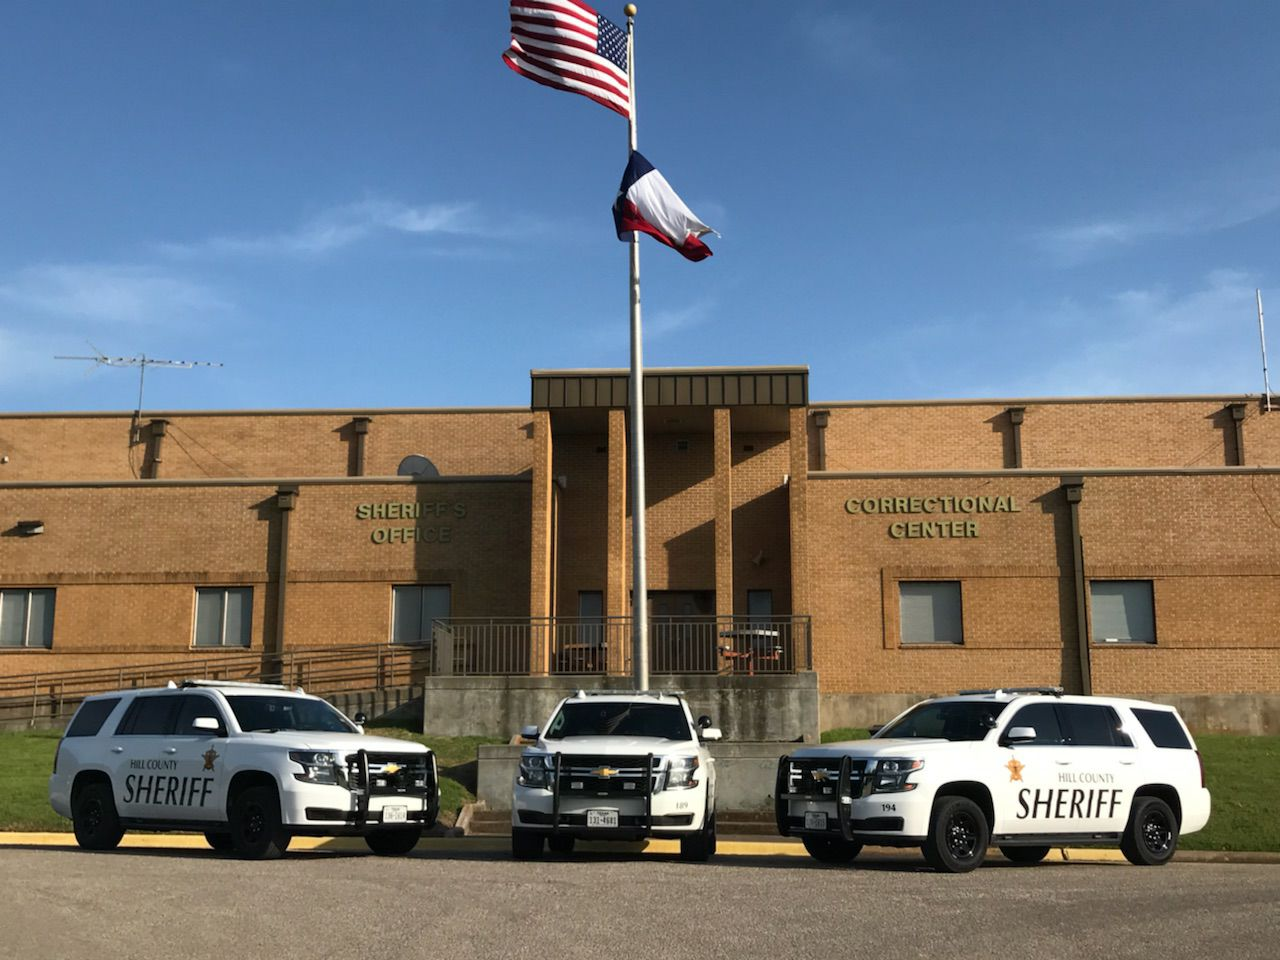 Hill County Sheriff's Office, TX Public Safety Jobs